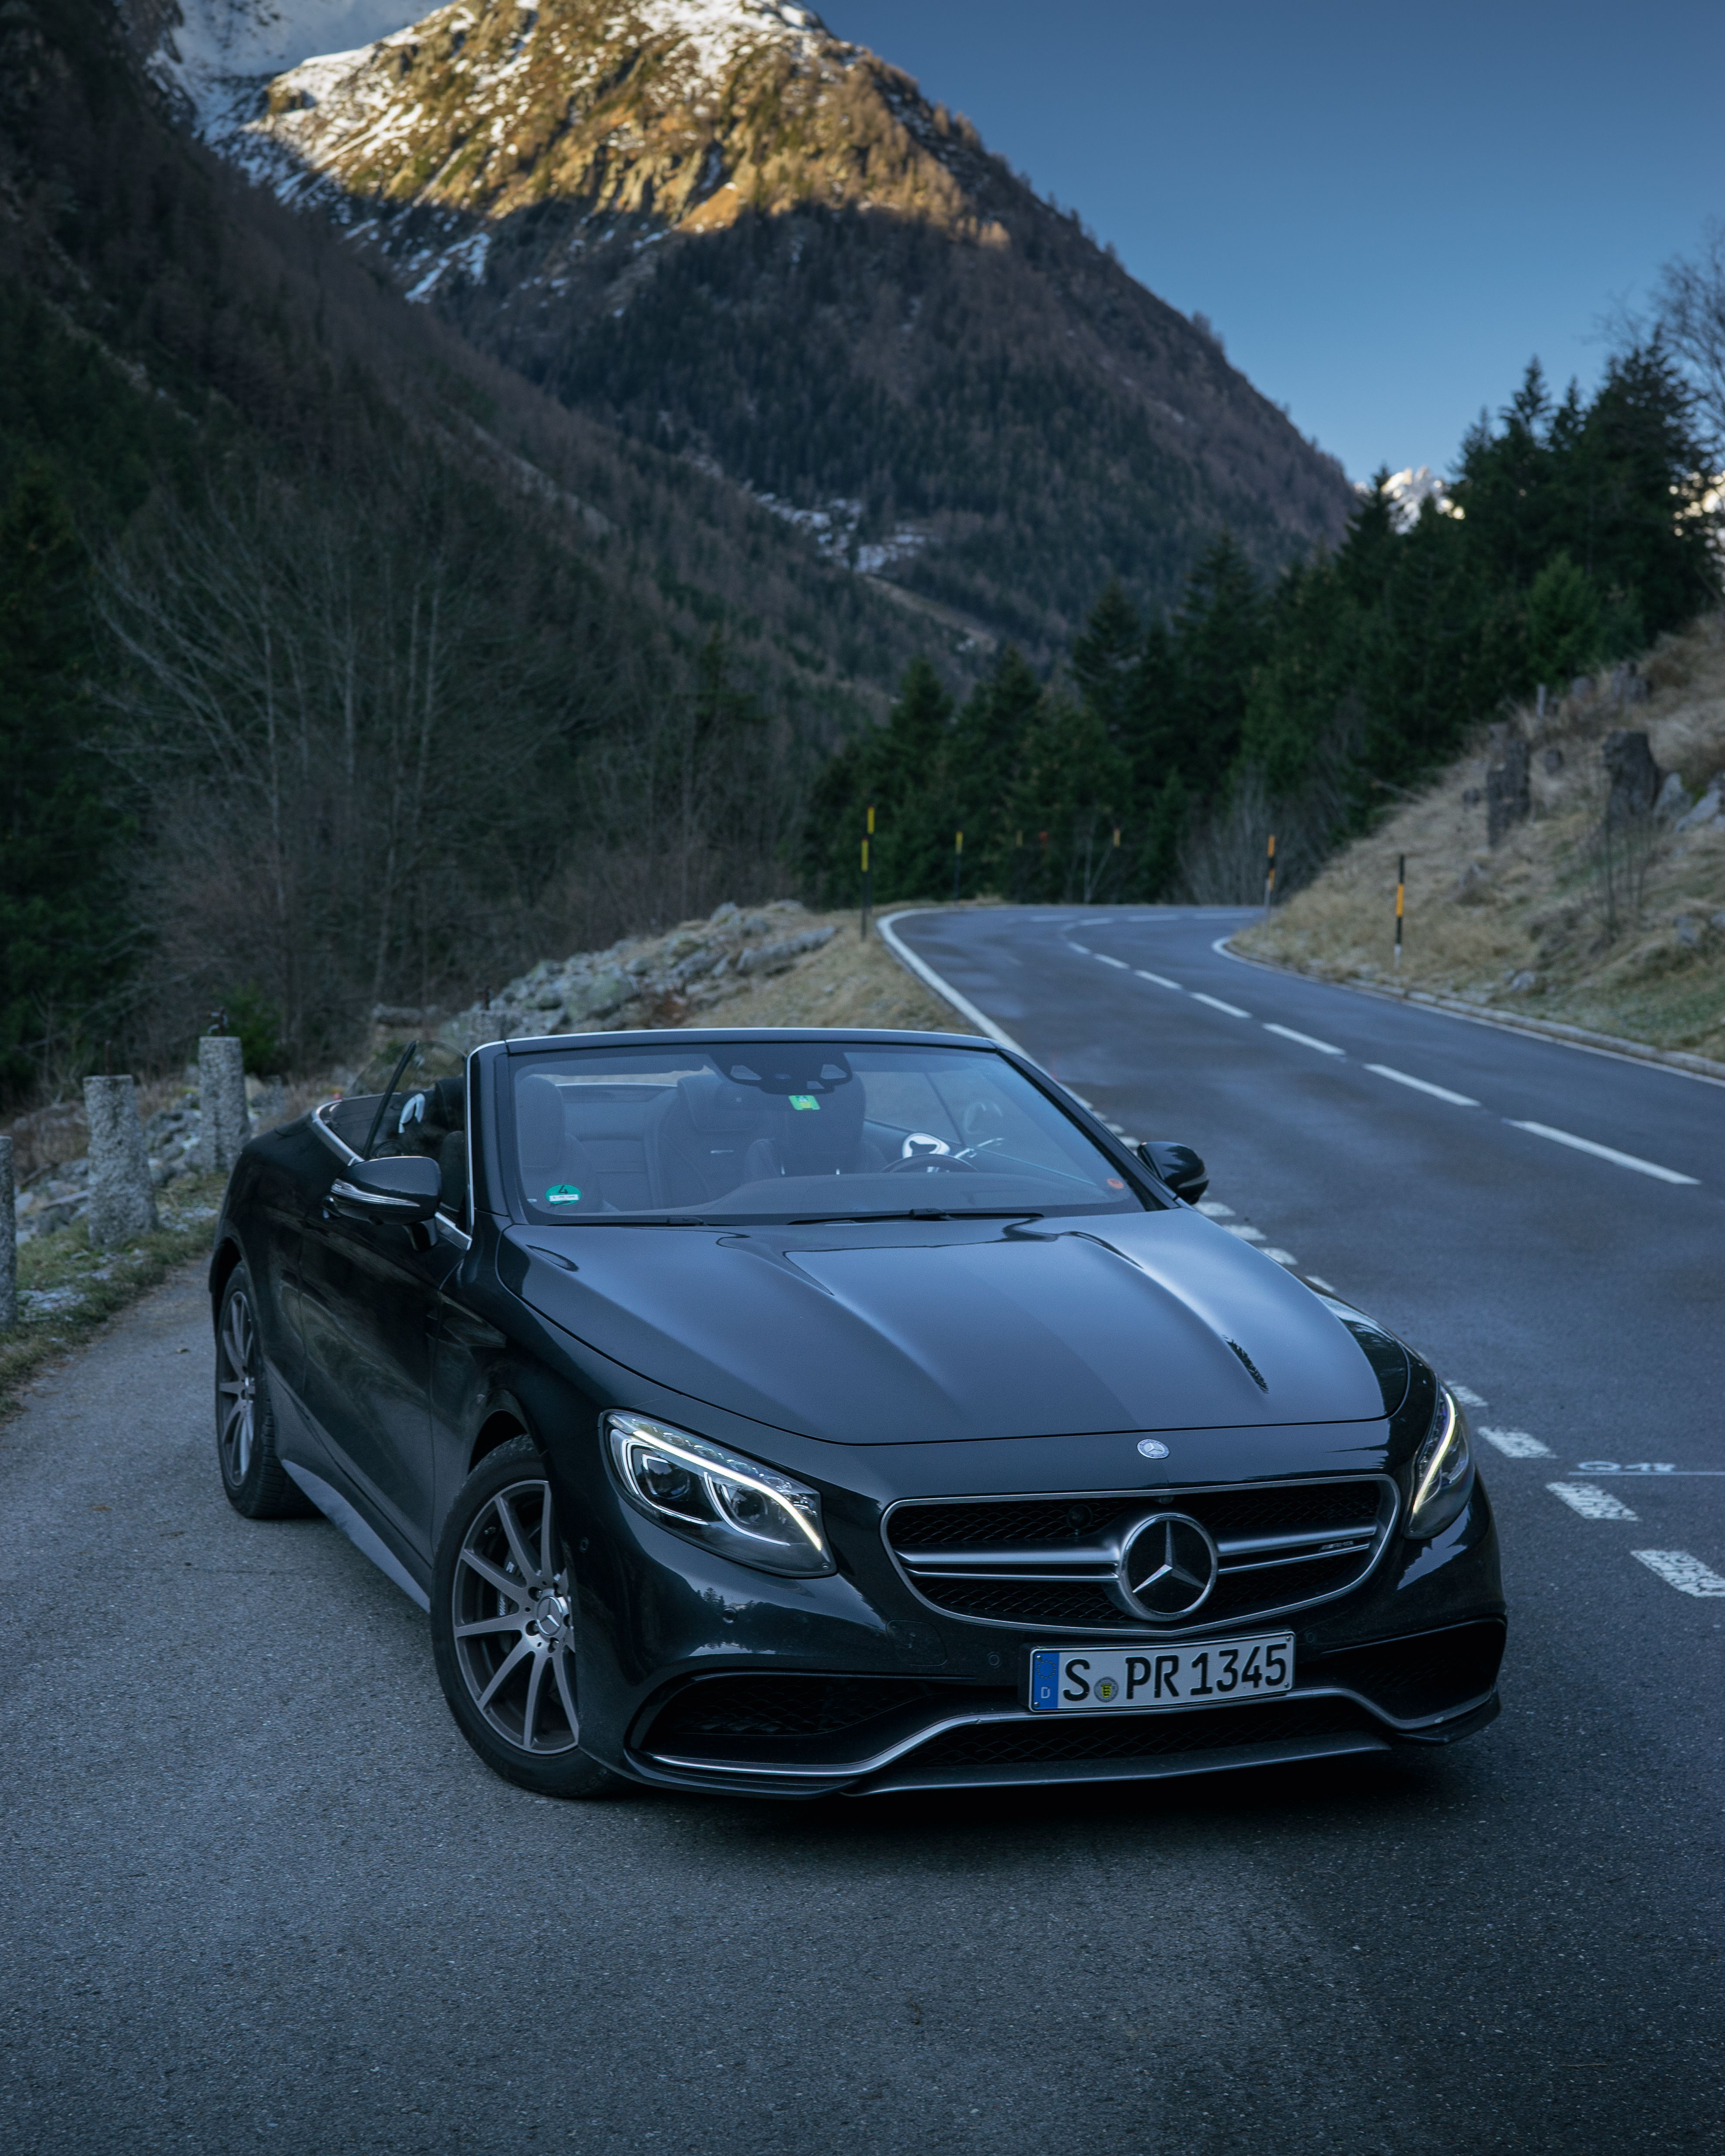 hight resolution of open top luxury the mercedes benz s 63 cabriolet photo by korhan